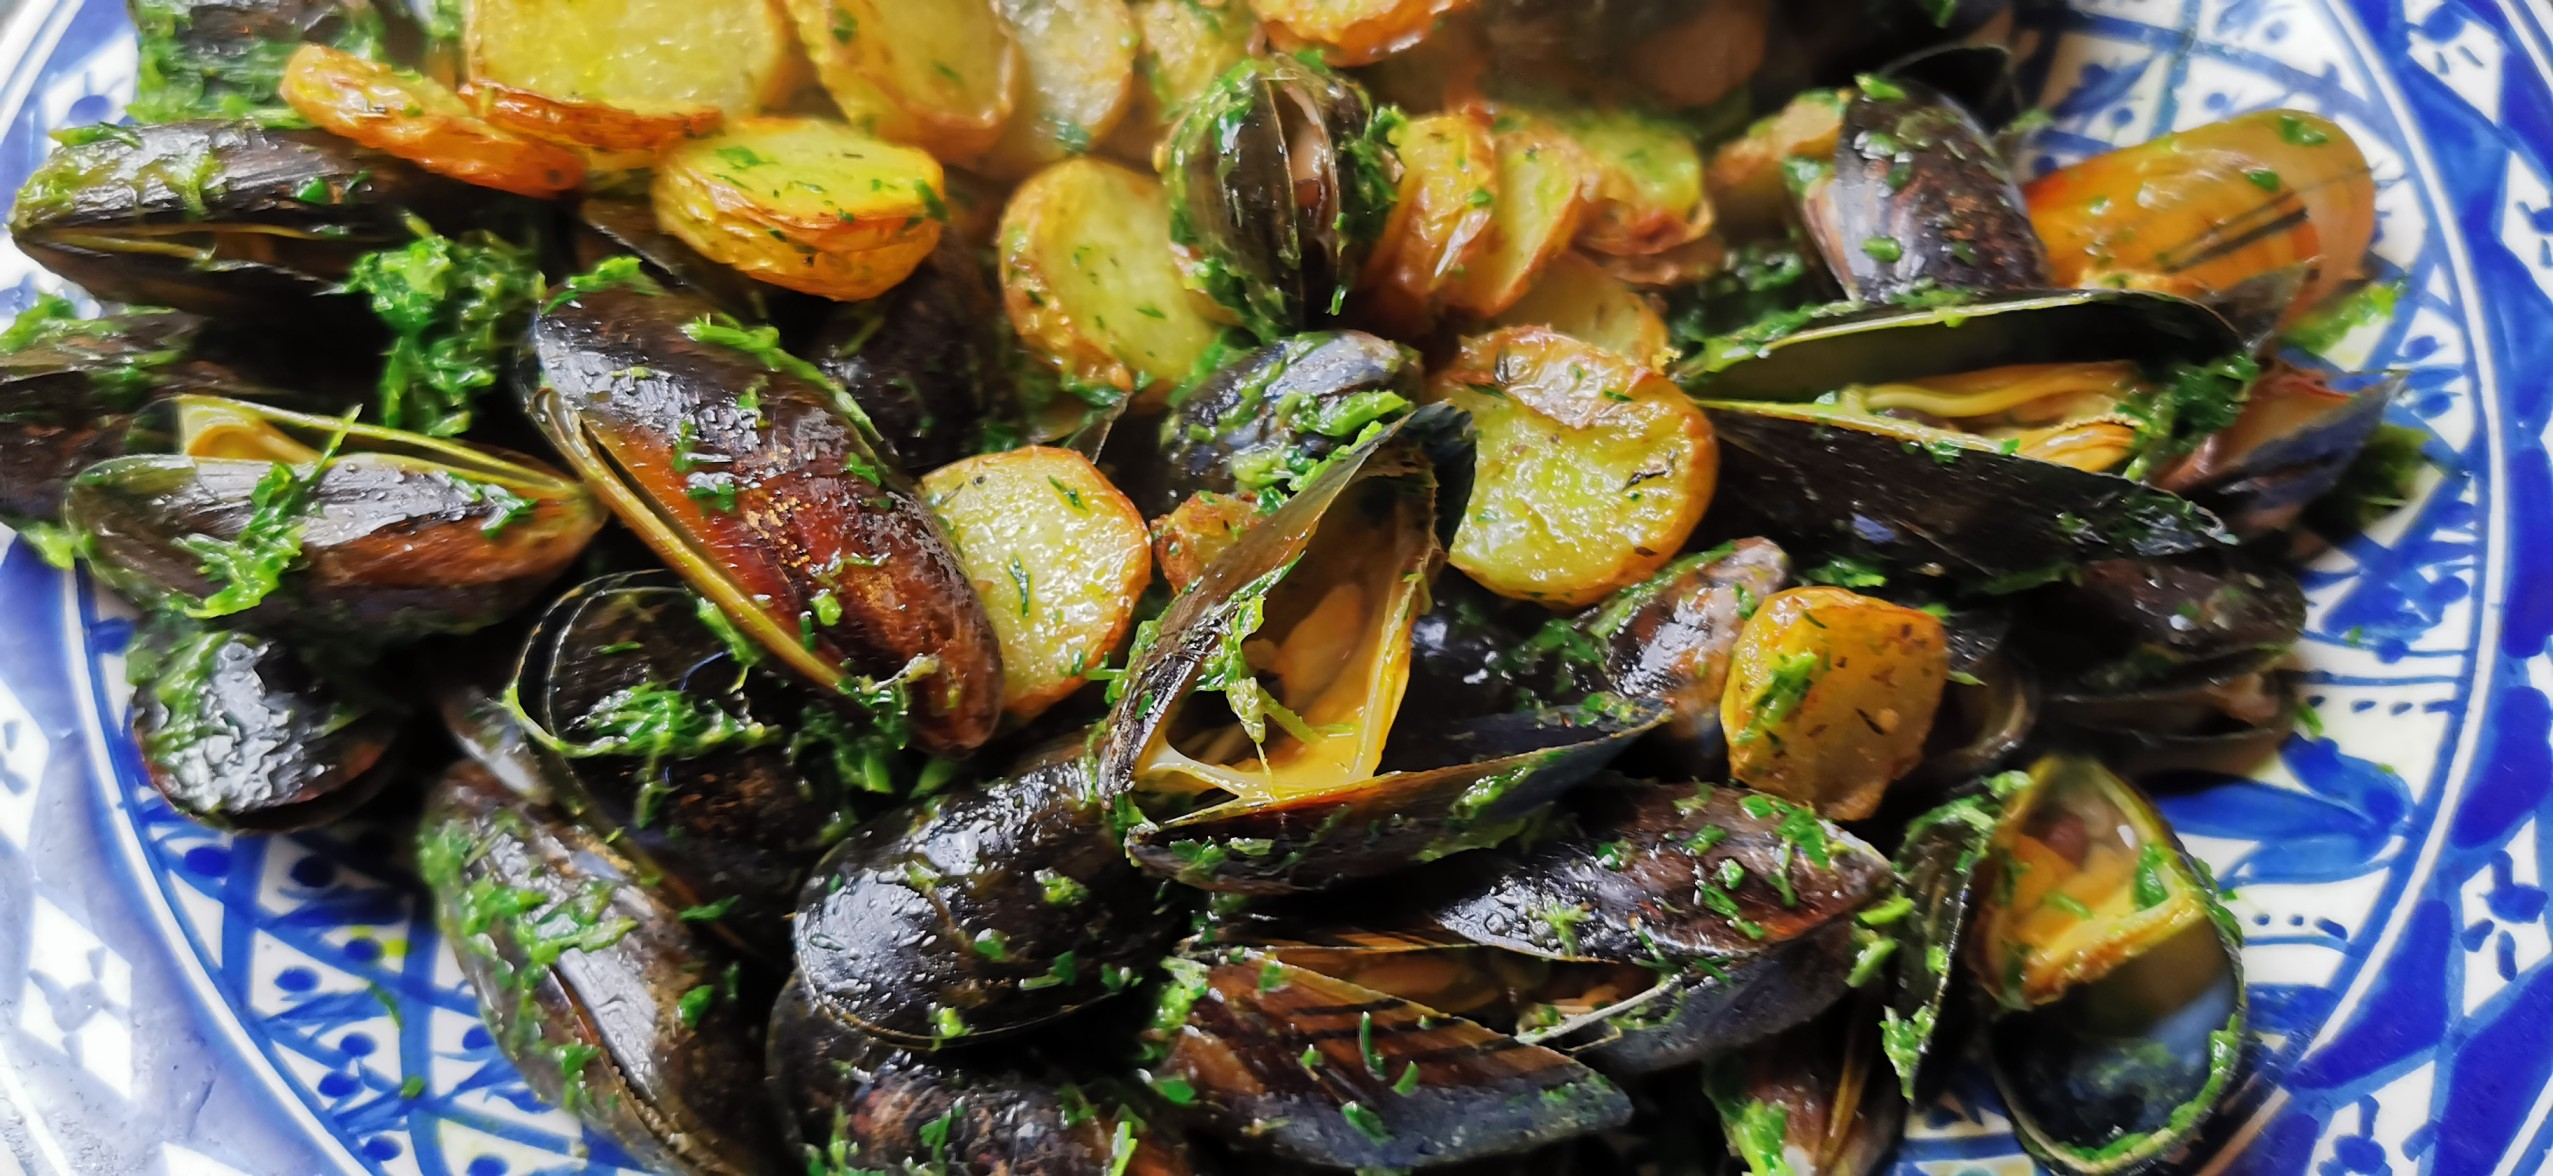 Moules Frites Au Beurre Vert – Herb Butter Mussels And Fries